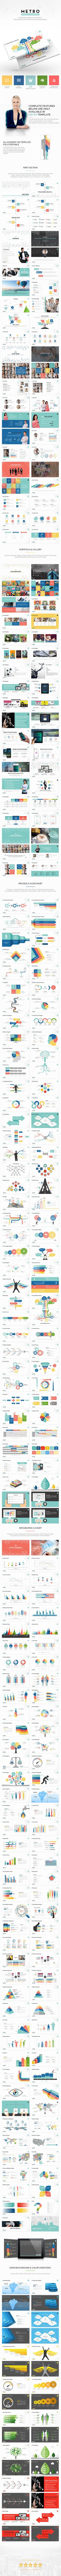 Buy Metro - Revolution Presentation by inspirasign on GraphicRiver. an Amazing Powerpoint Template for your Presentation business or personal use, such a creative industry, . Presentation Design, Presentation Templates, Metro Map, Gantt Chart, Swot Analysis, Slide Design, Creative Industries, Revolution, Logo Design